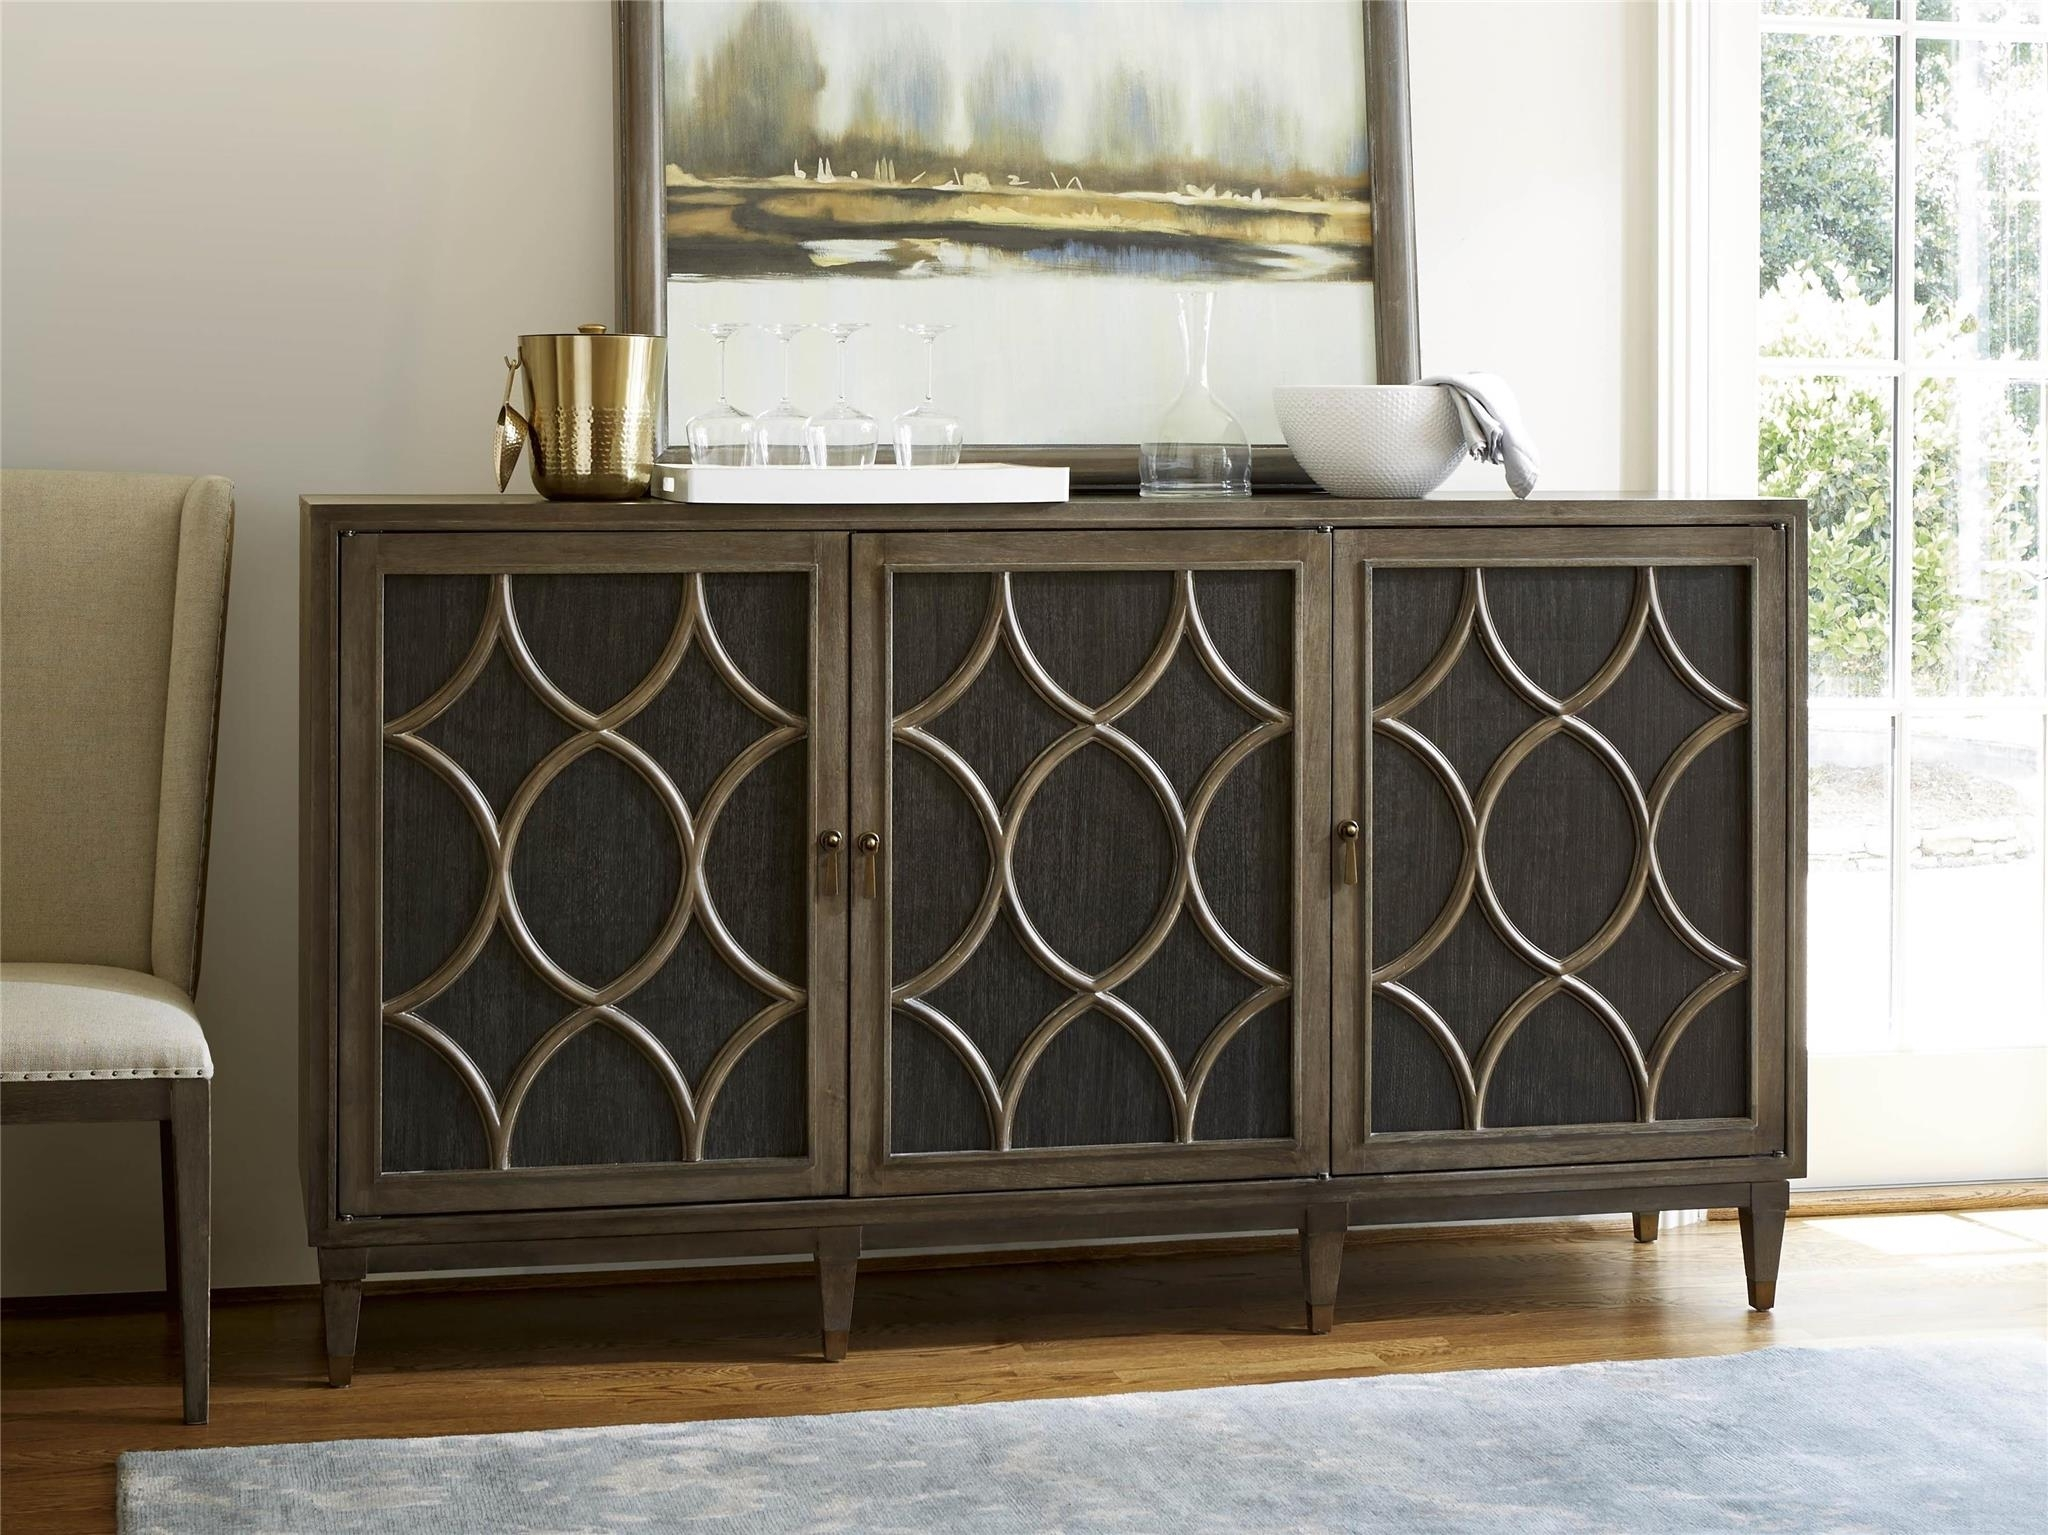 Universal Furniture | Playlist | Sideboard Inside Iron Sideboards (View 28 of 30)